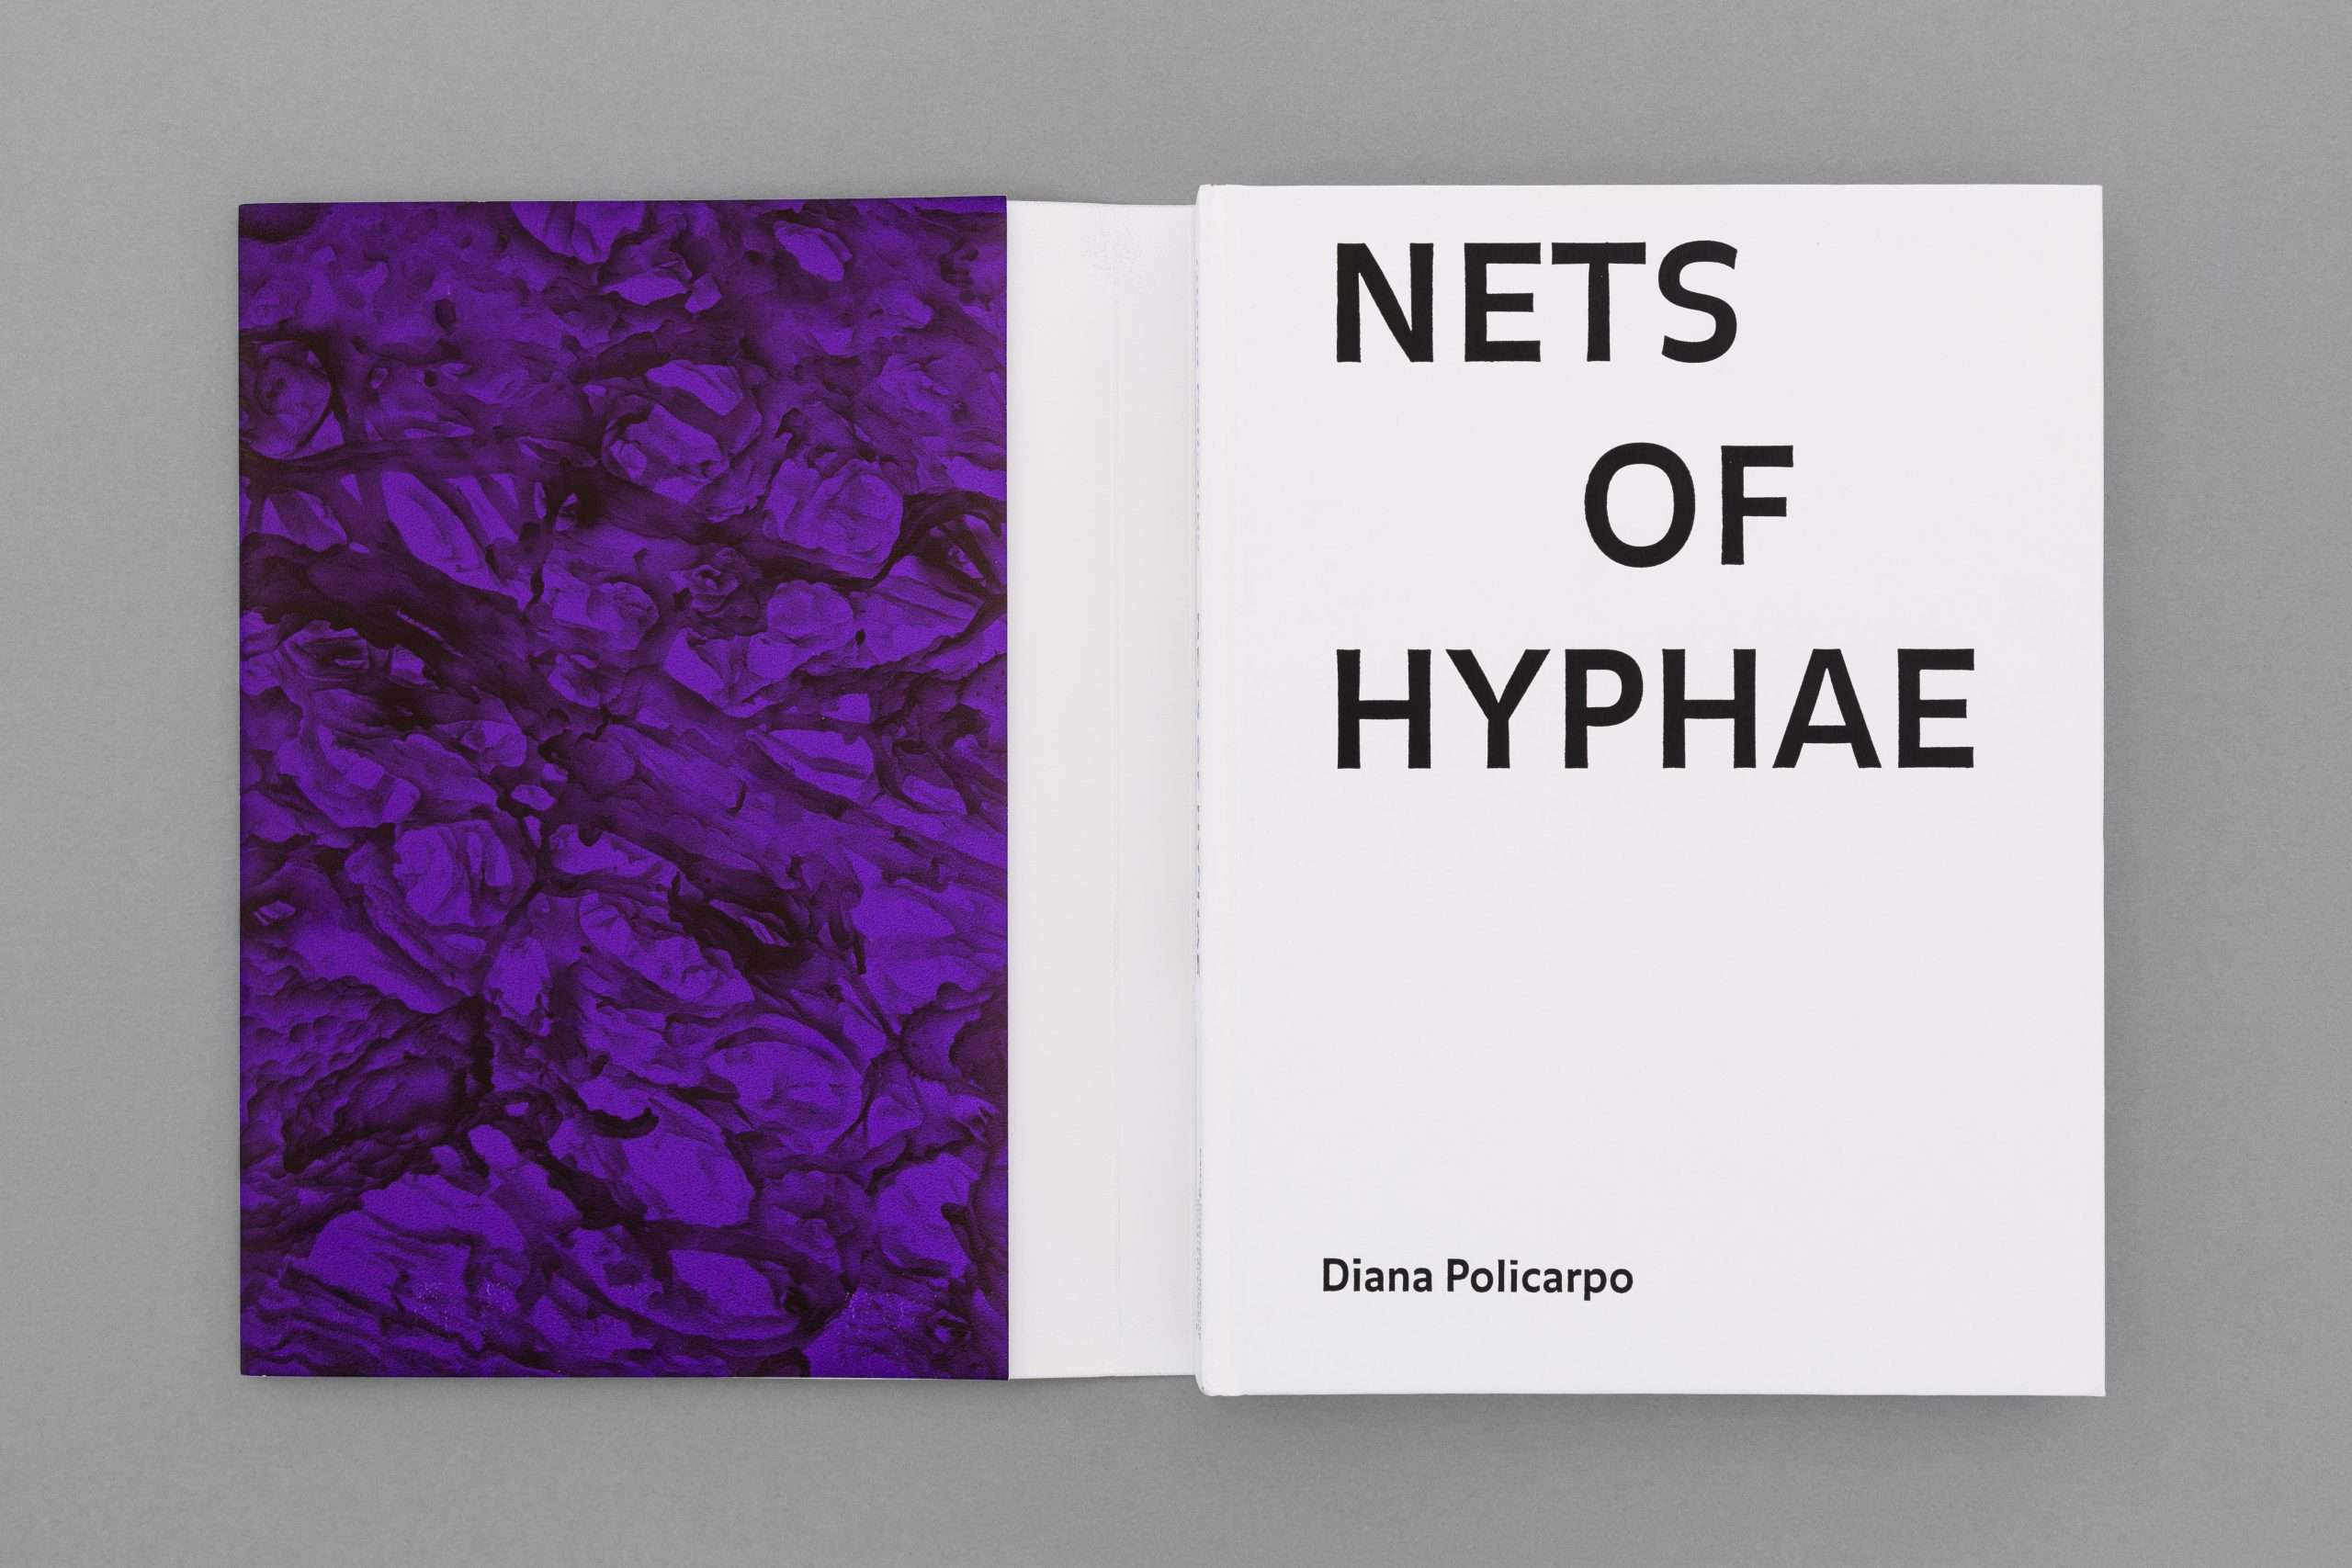 João M. Machado – Diana Policarpo – Nets of Hyphae (2 of 15)